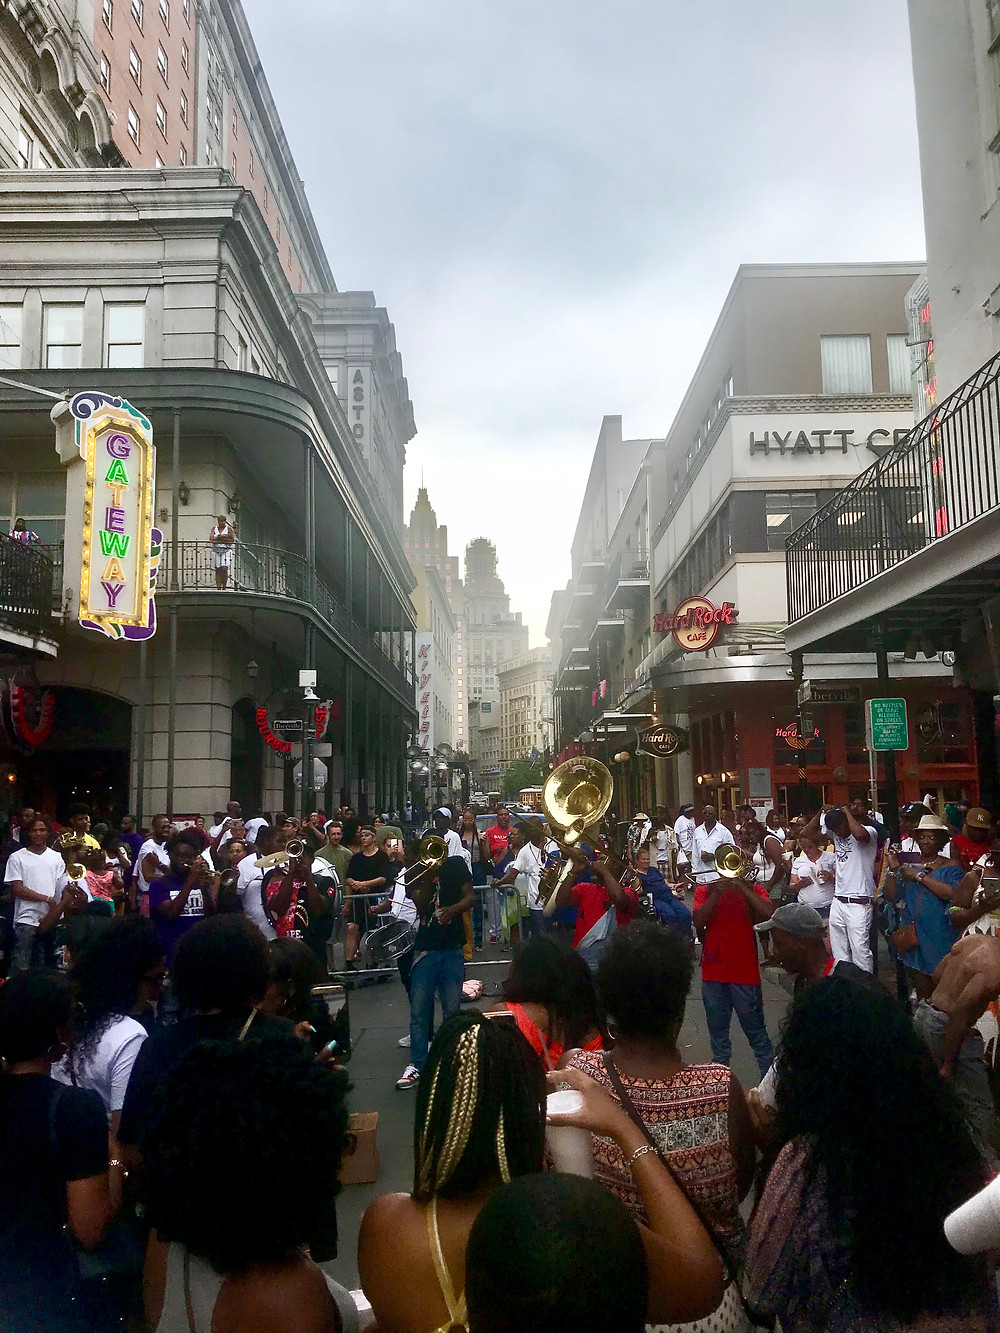 During Essence Fest we caught more than a few amazing Jazz Bands while roaming Bourbon Street by day.